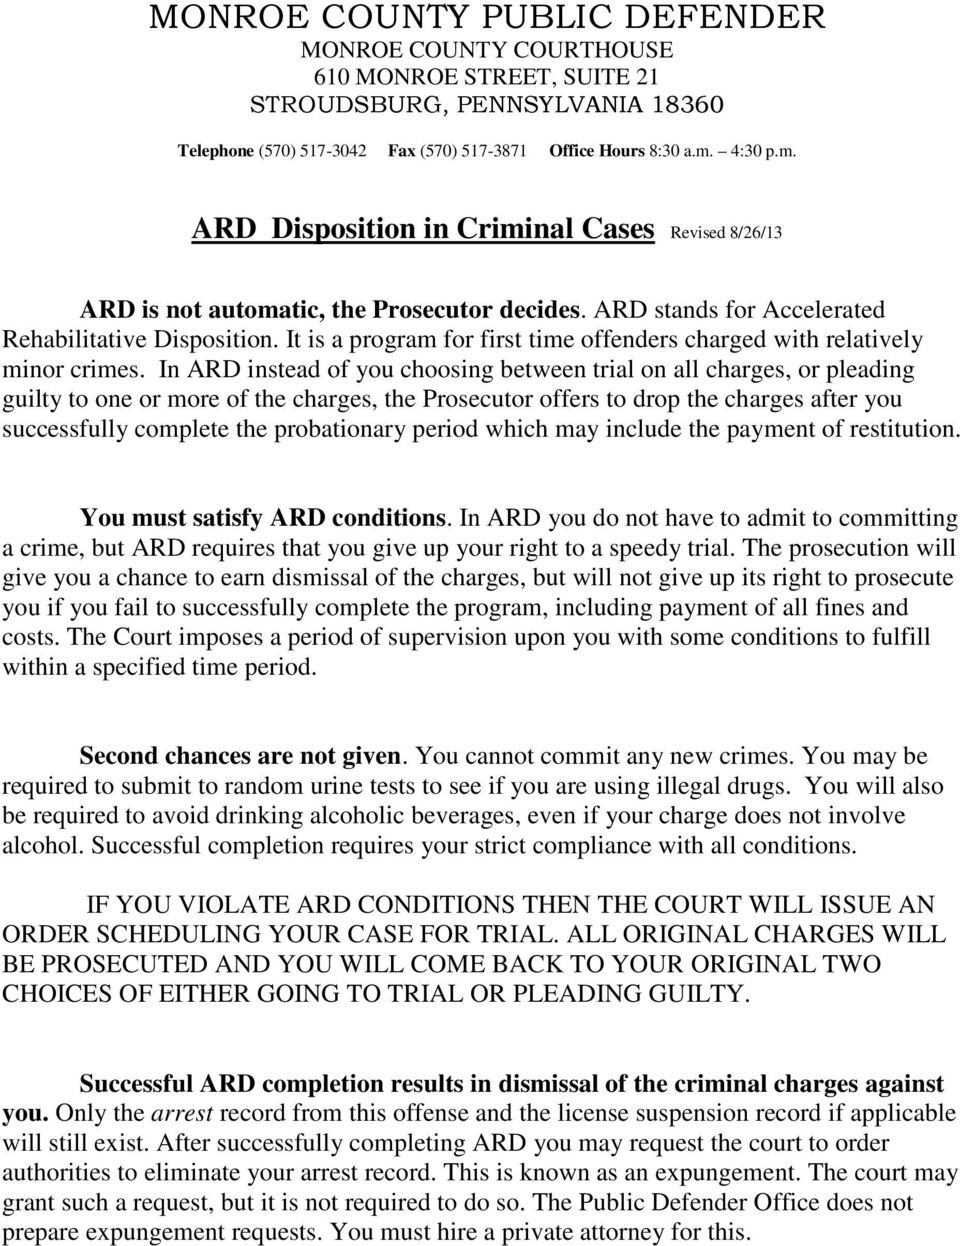 In ARD instead of you choosing between trial on all charges, or pleading guilty to one or more of the charges, the Prosecutor offers to drop the charges after you successfully complete the